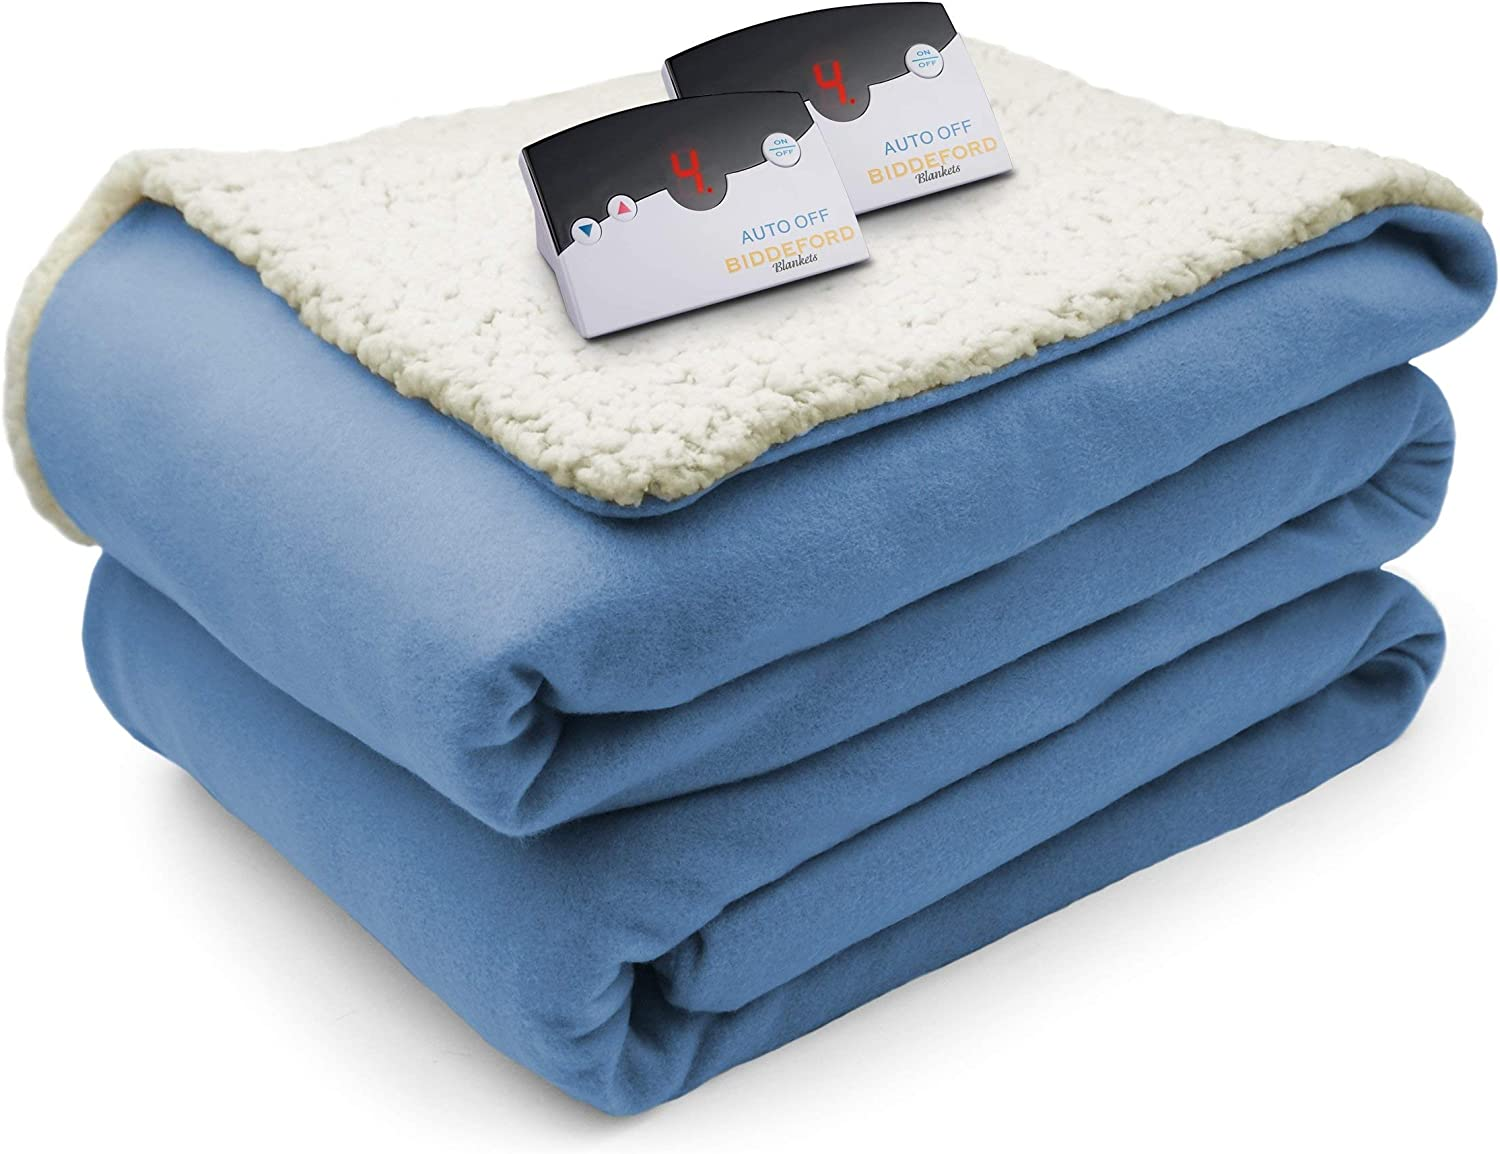 Biddeford Comfort Knit Fleece Sherpa Electric Heated Blanket with Digtal Controller, Queen, Blue